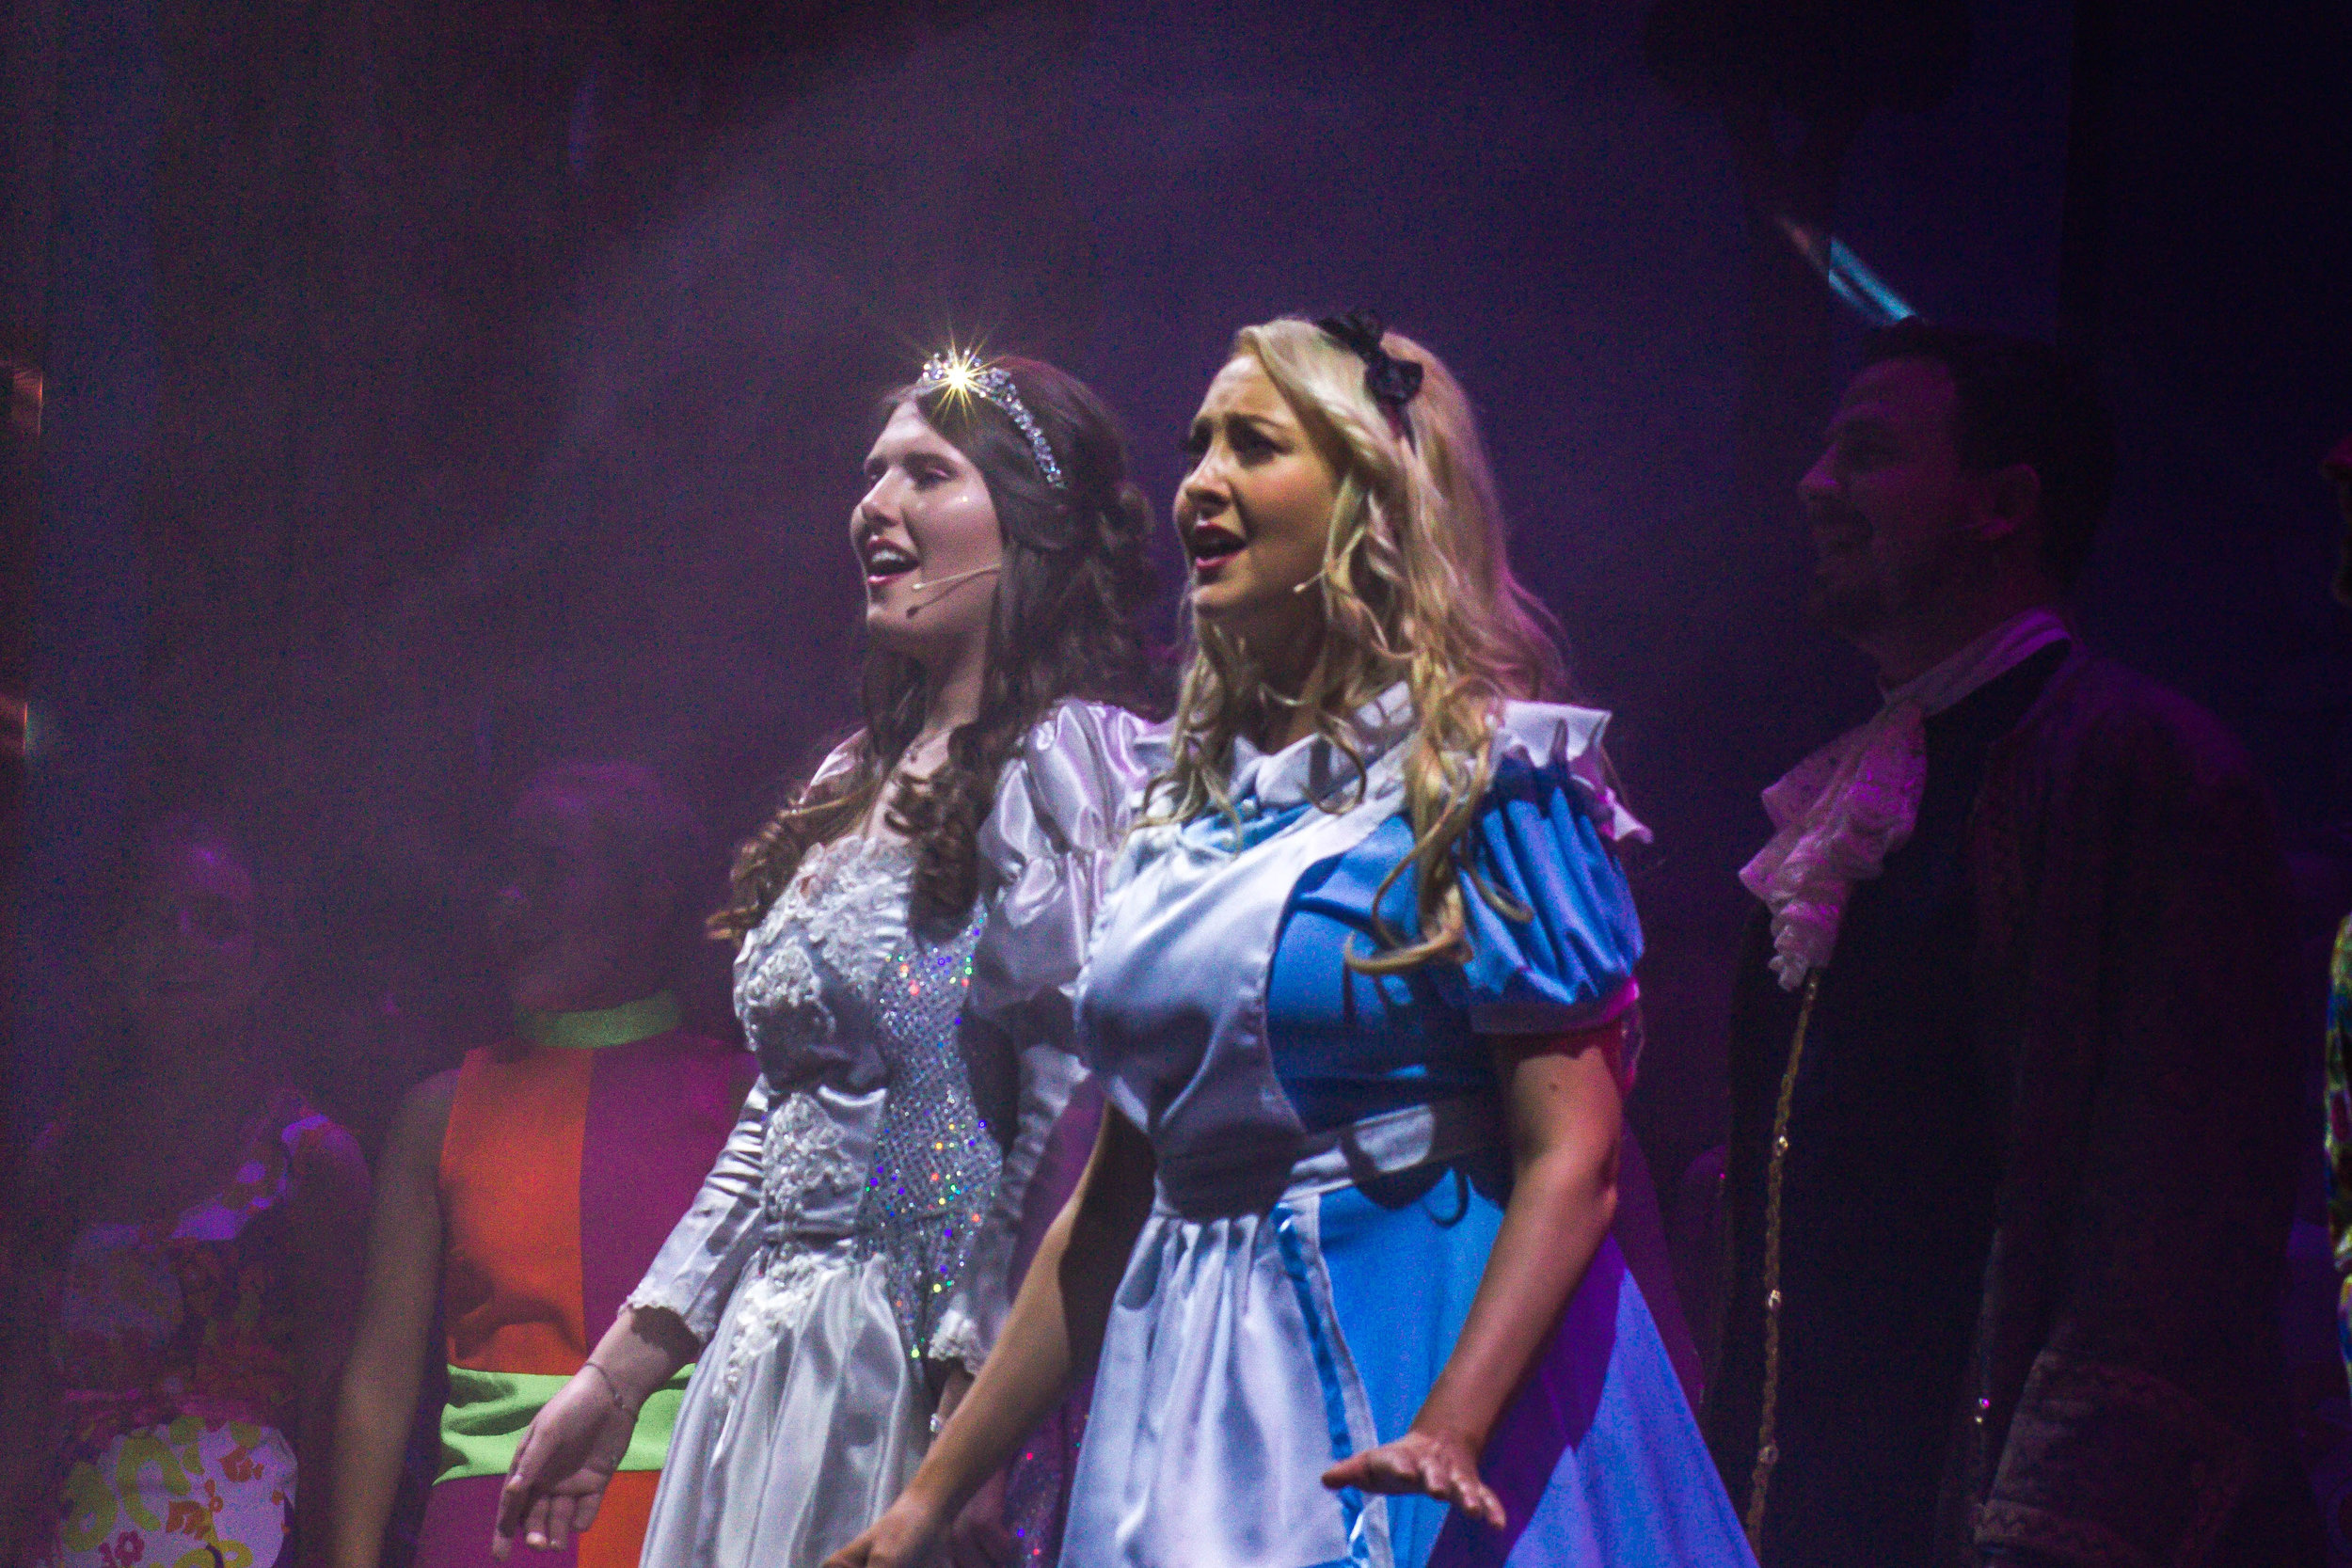 Alice_In_Wonderland_Panto-8517-2.jpg